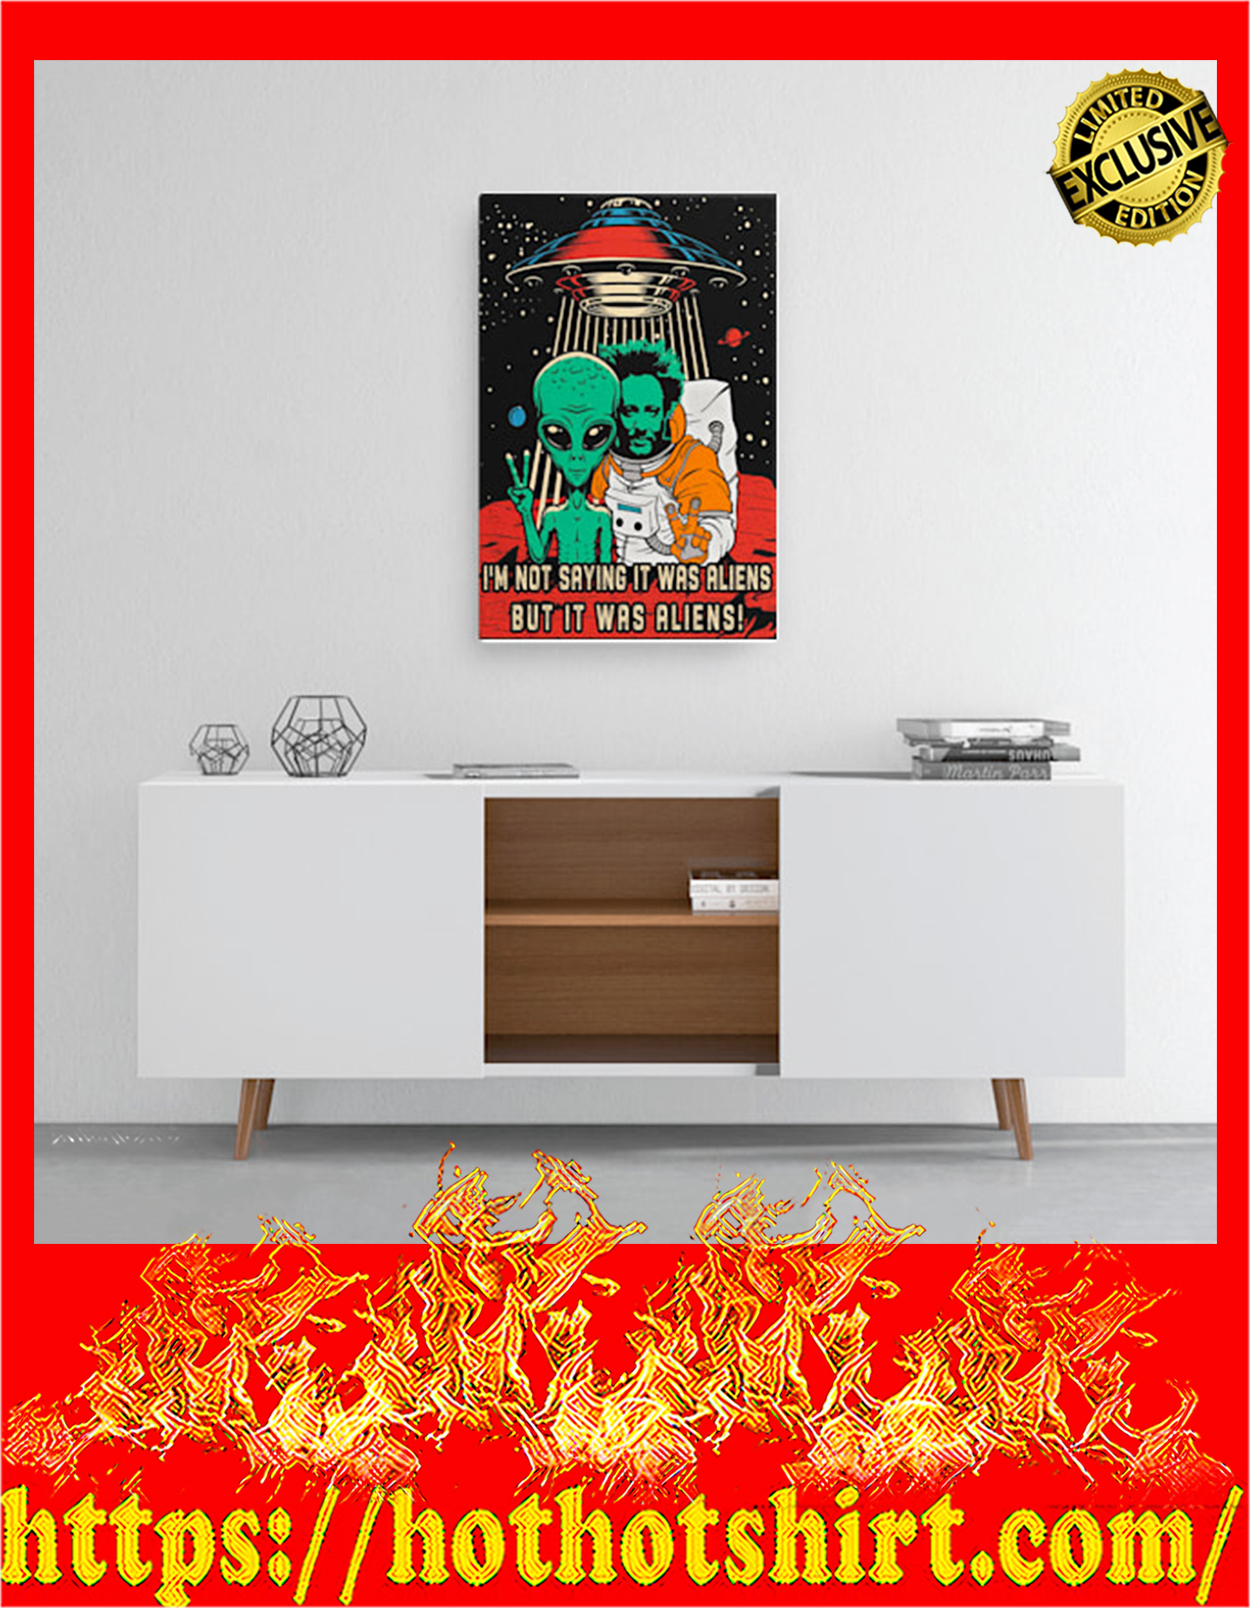 I'm not saying it was aliens but it was aliens canvas prints - medium